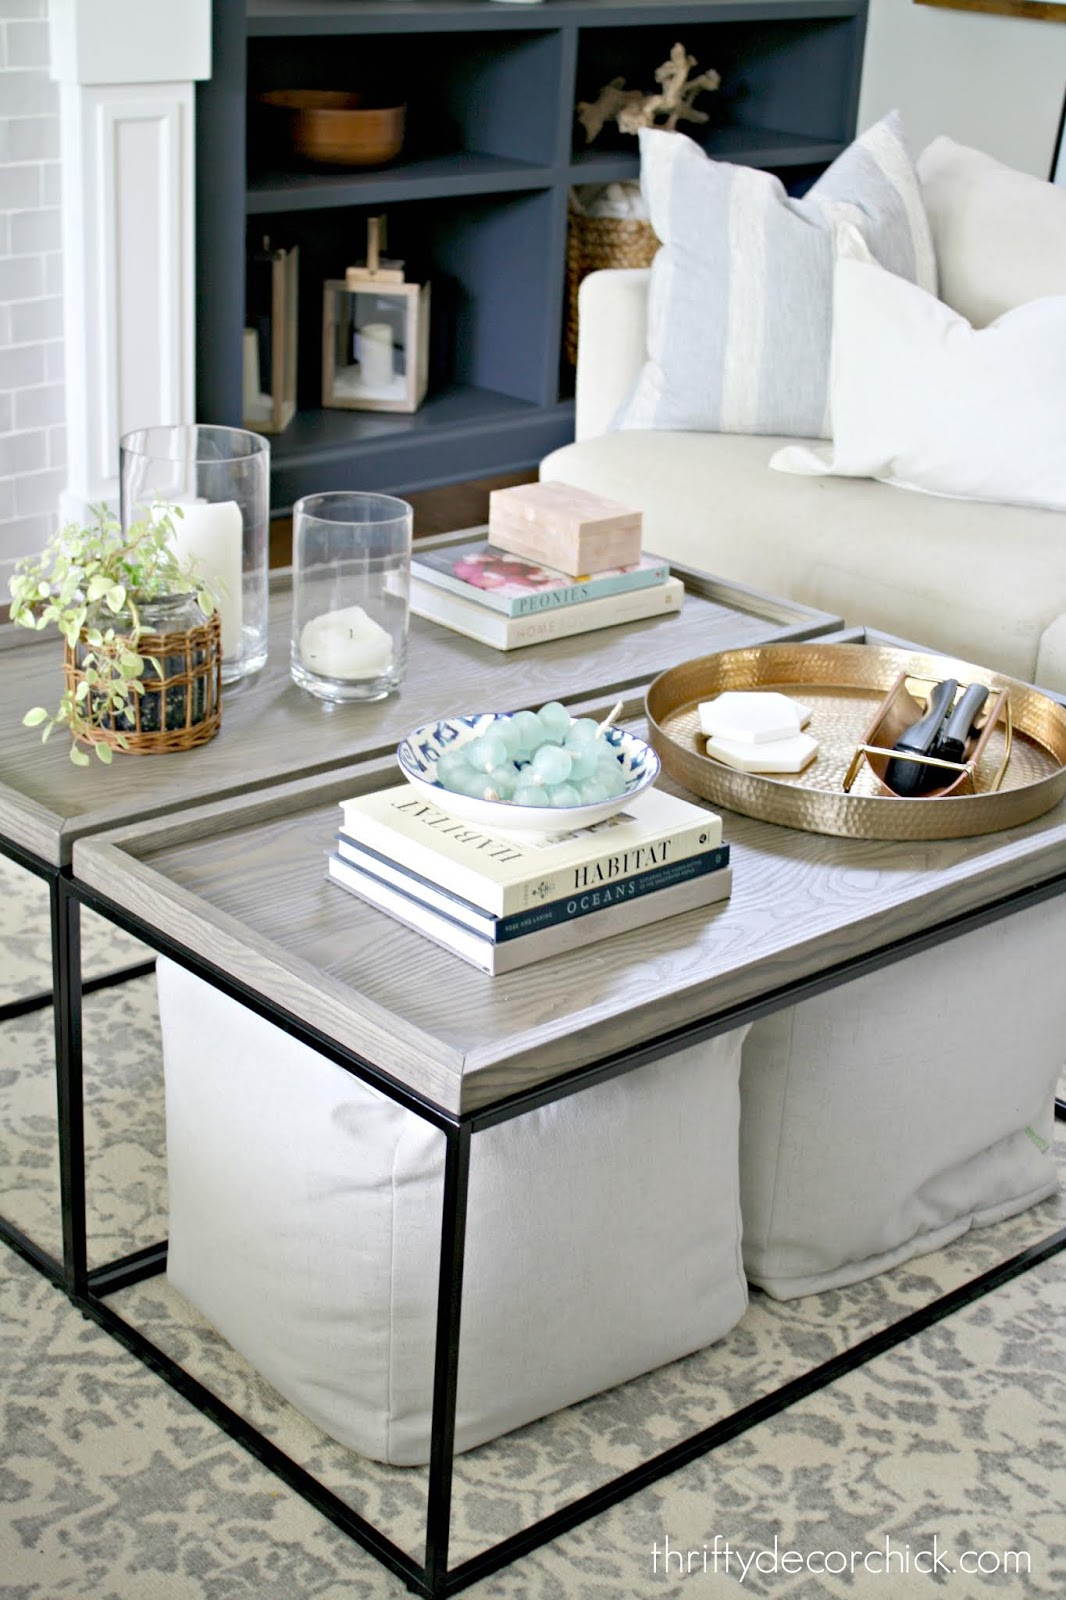 Using two coffee tables to create large table